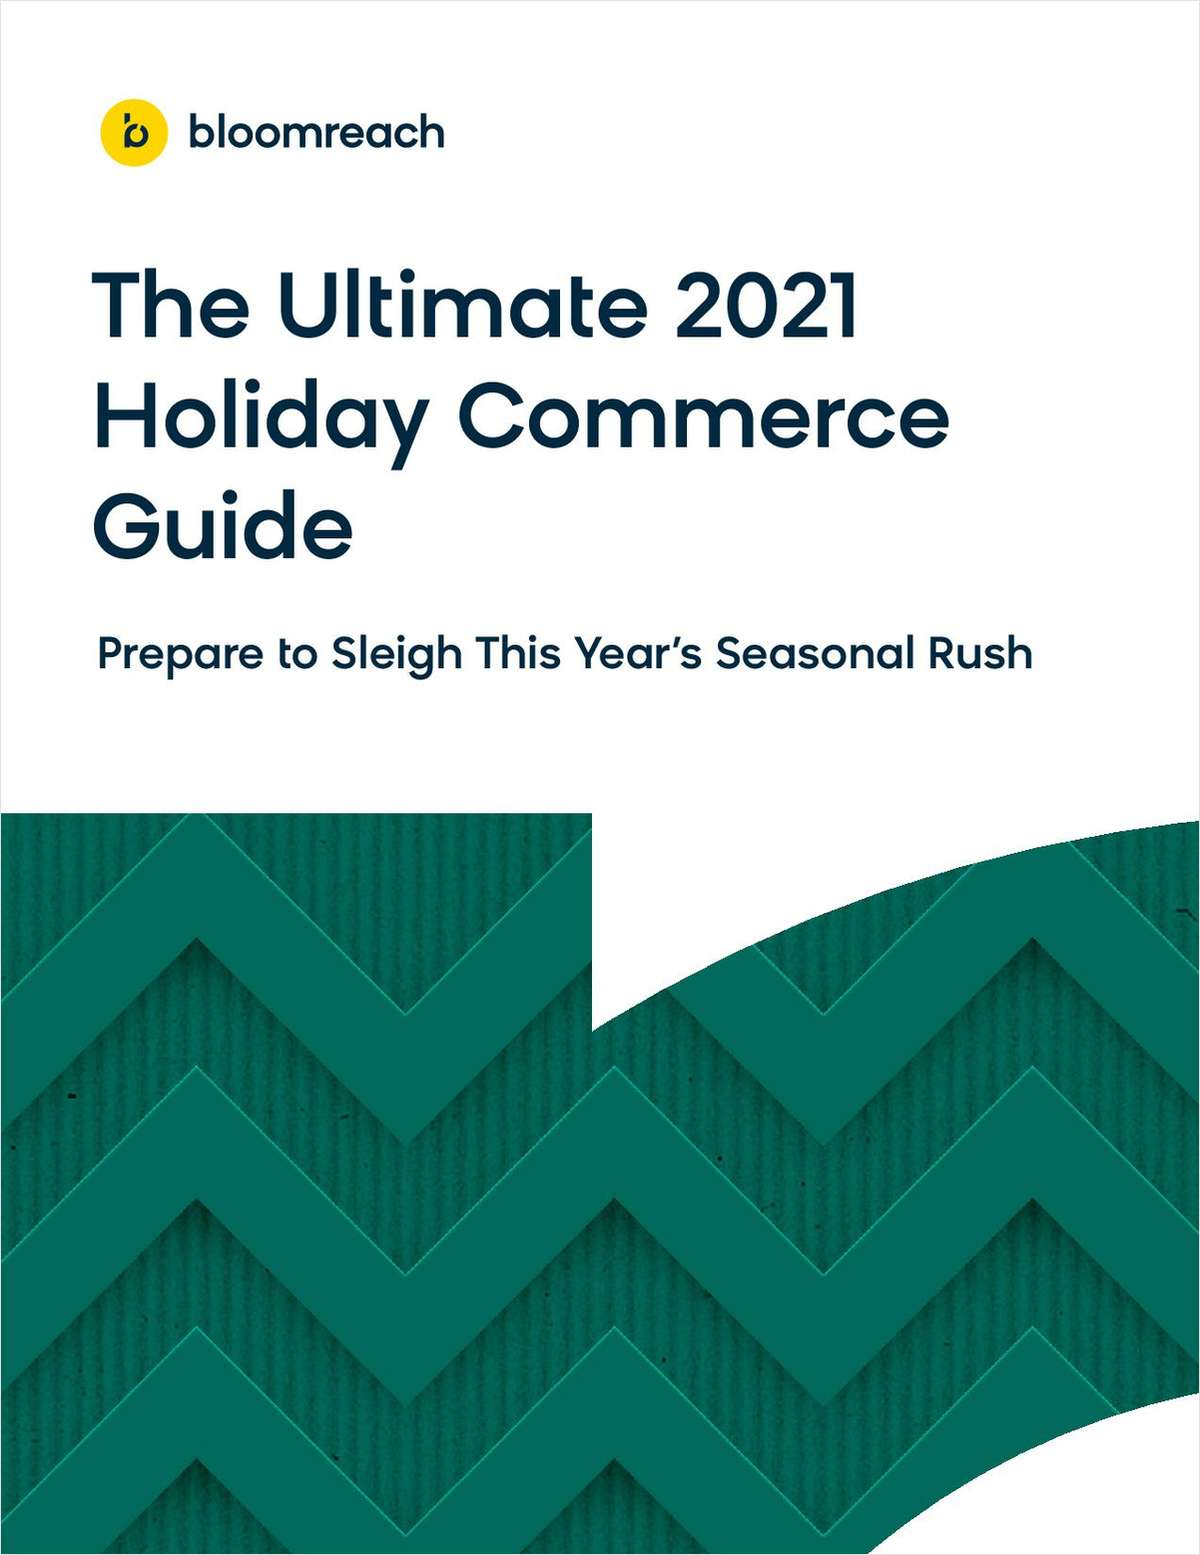 The Ultimate 2021 Holiday Commerce Guide